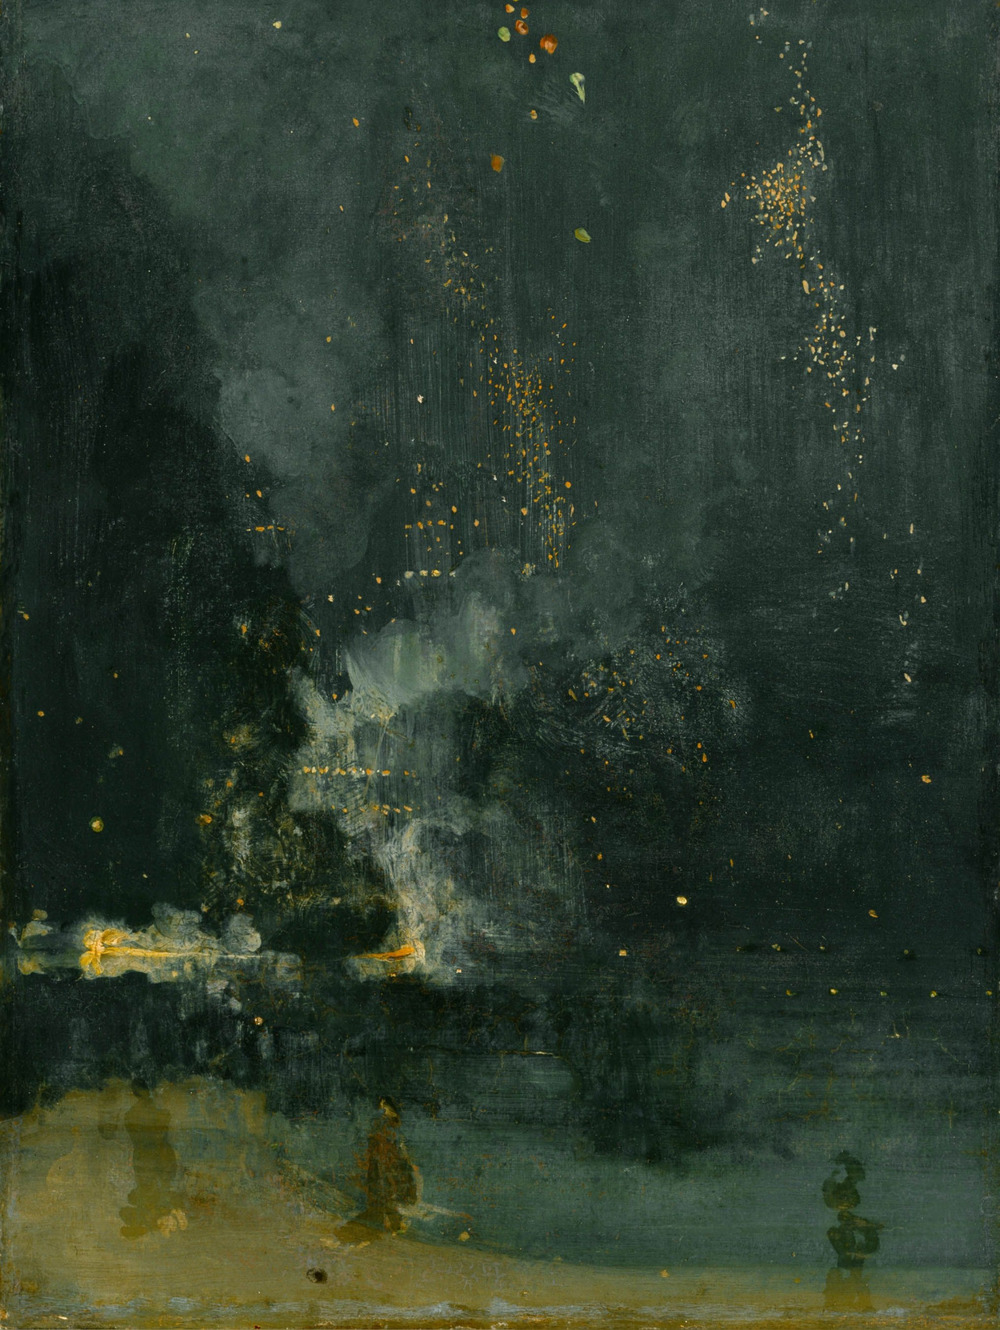 stgardini :     James Abbott McNeill Whistler |  Nocturne in Black and Gold: The Falling Rocket , c. 1875